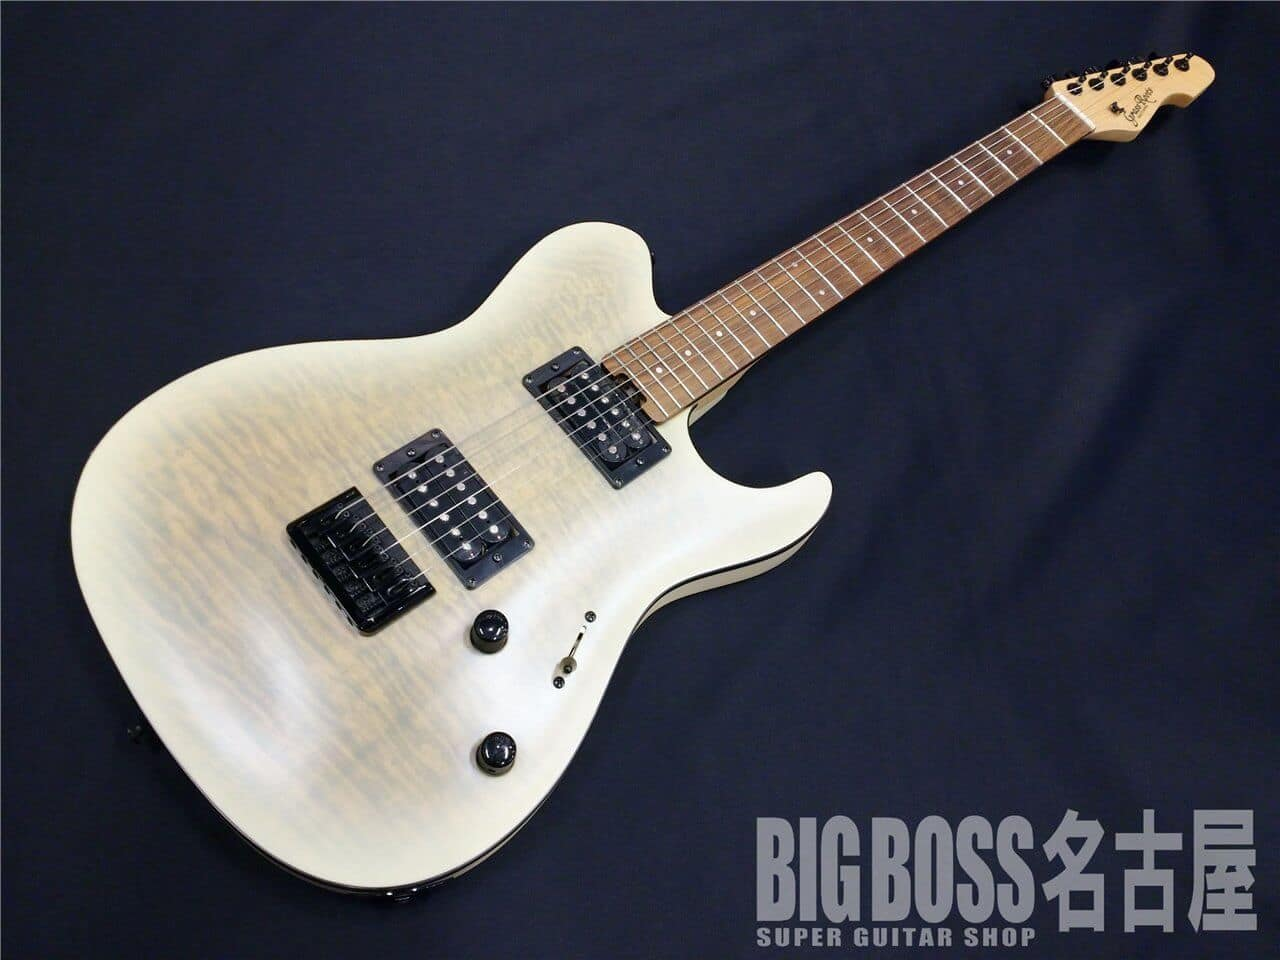 【USED】GrassRoots(グラスルーツ)G-TB-55R(See Thru White Satin) 名古屋店